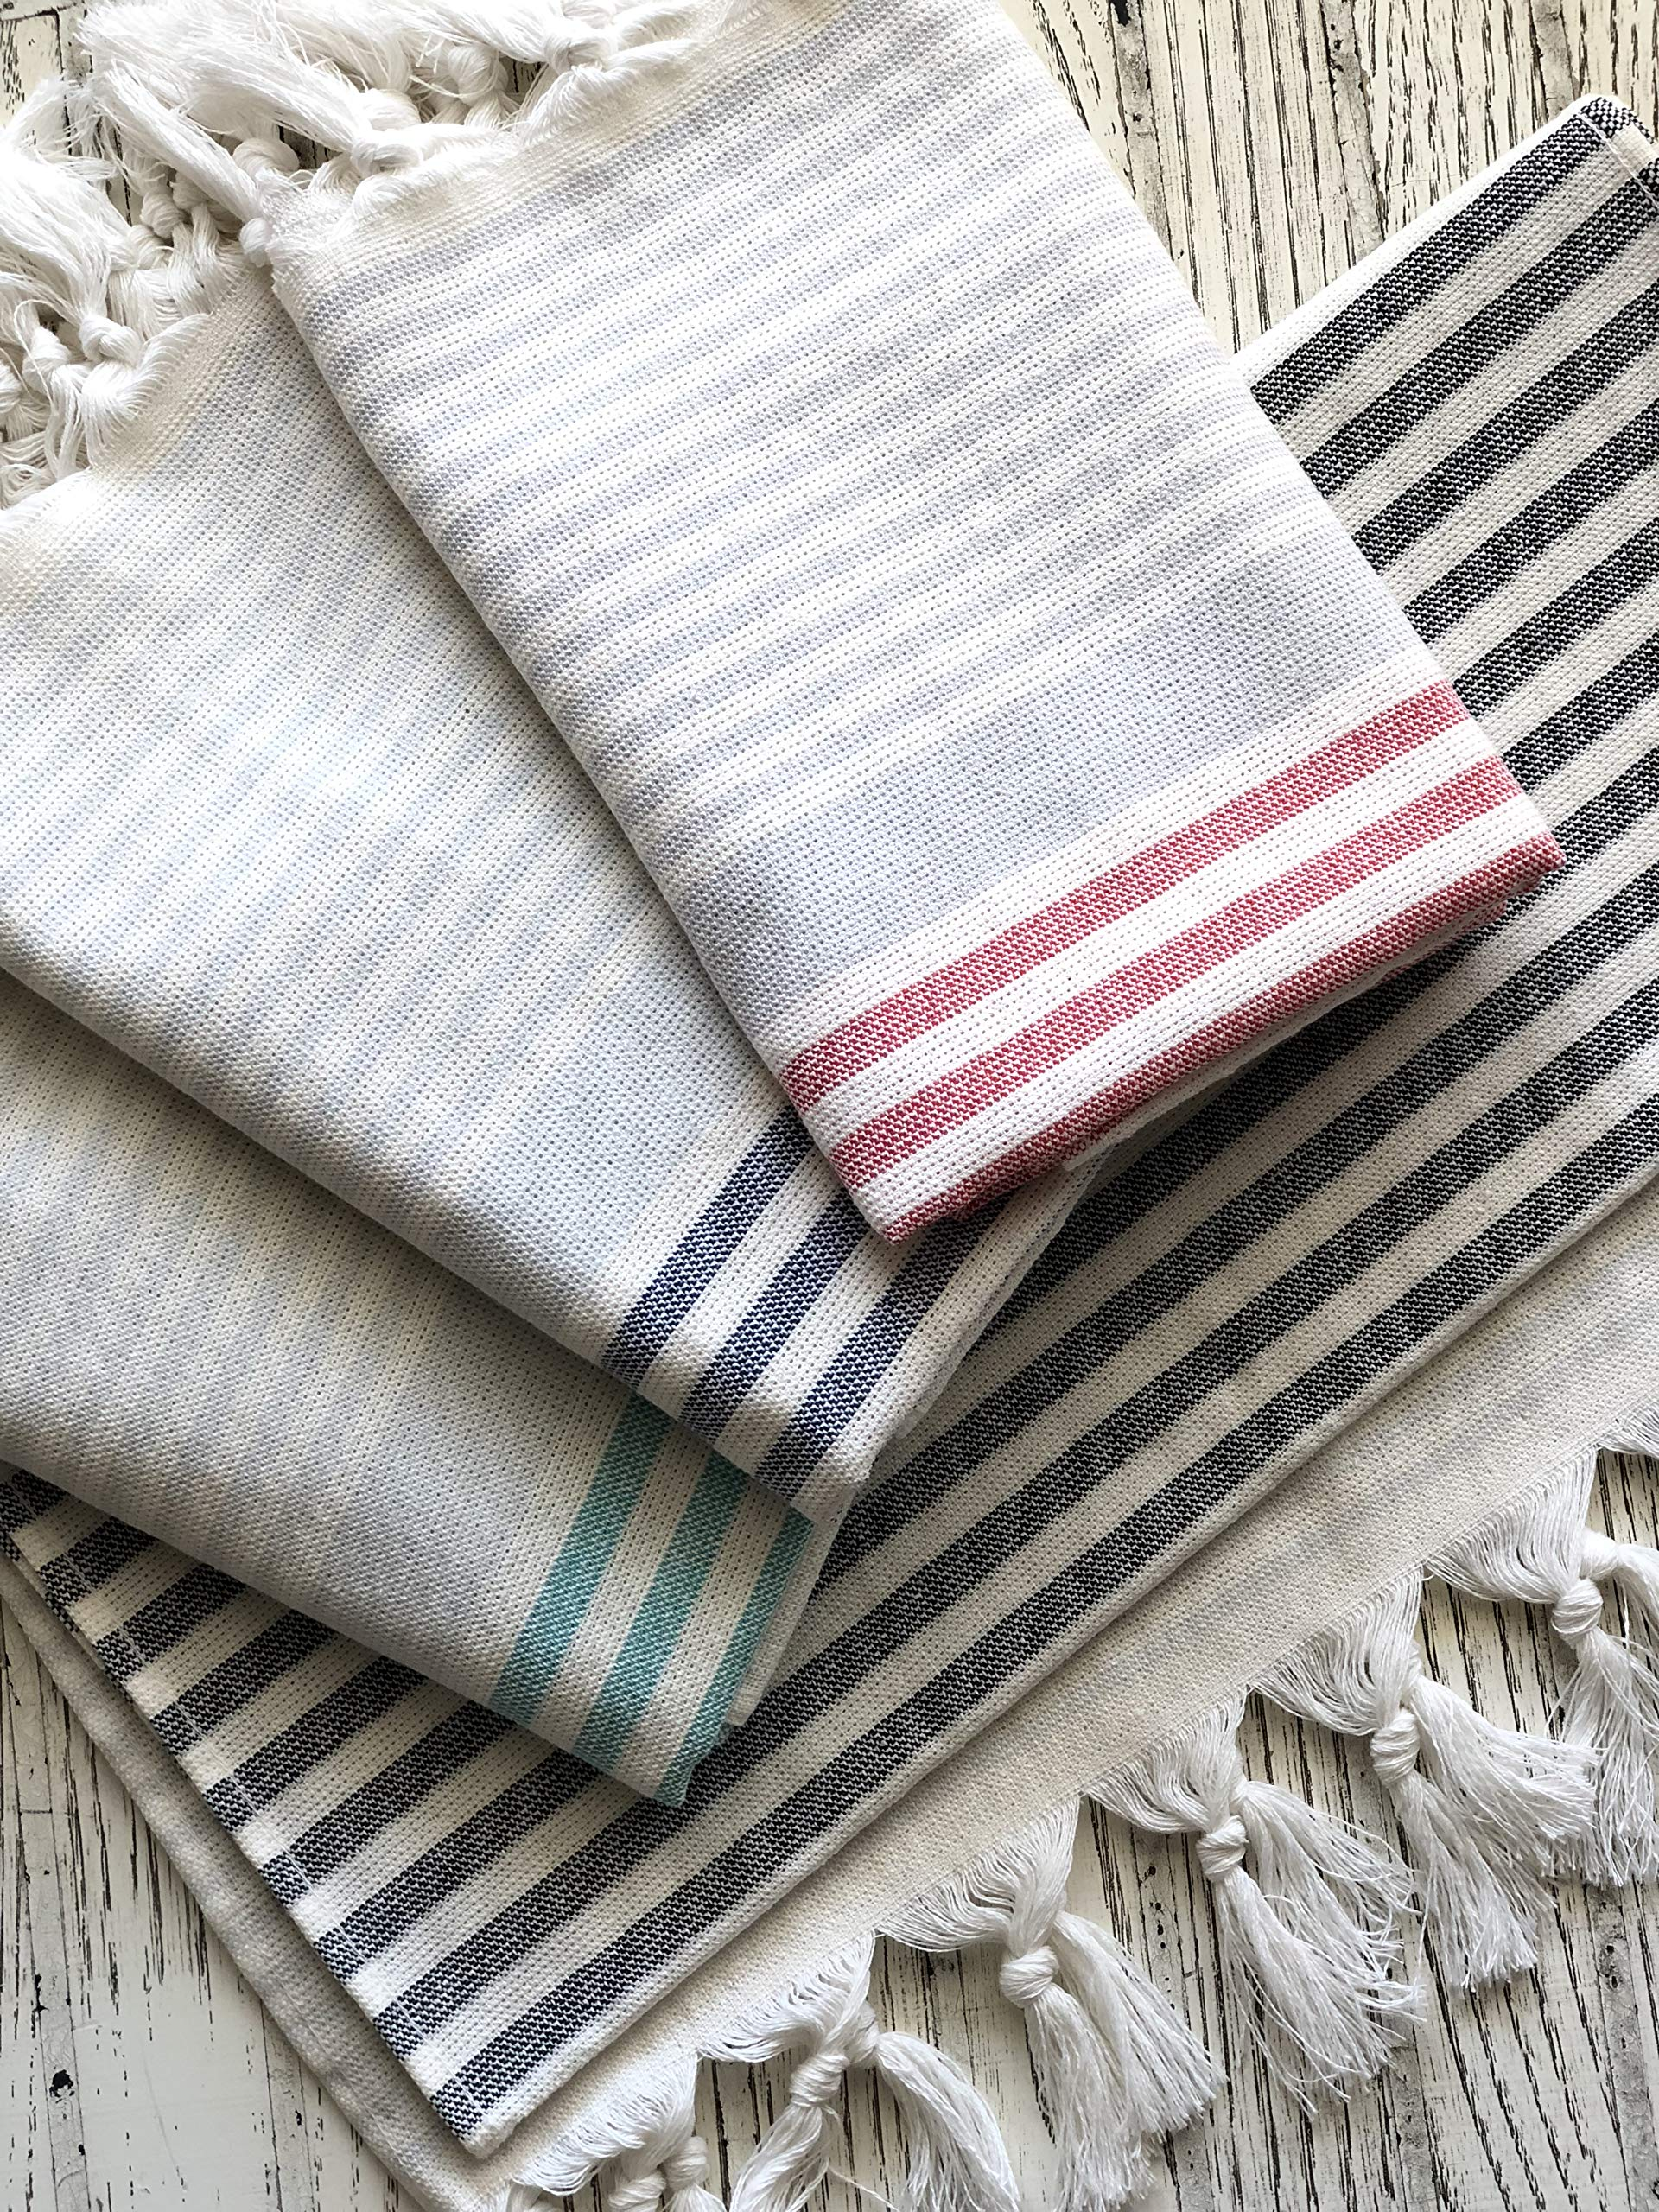 Trend Set of 4 Turkish Hand Towel, Gym Towels, Kitchen towel set, face towels 100% Cotton Size 18'' x 36'' (45cm x 90cm) Peshtemal Decorative Bathroom (Natural Variety, Pack of 4) Hand-loomed Natural Di